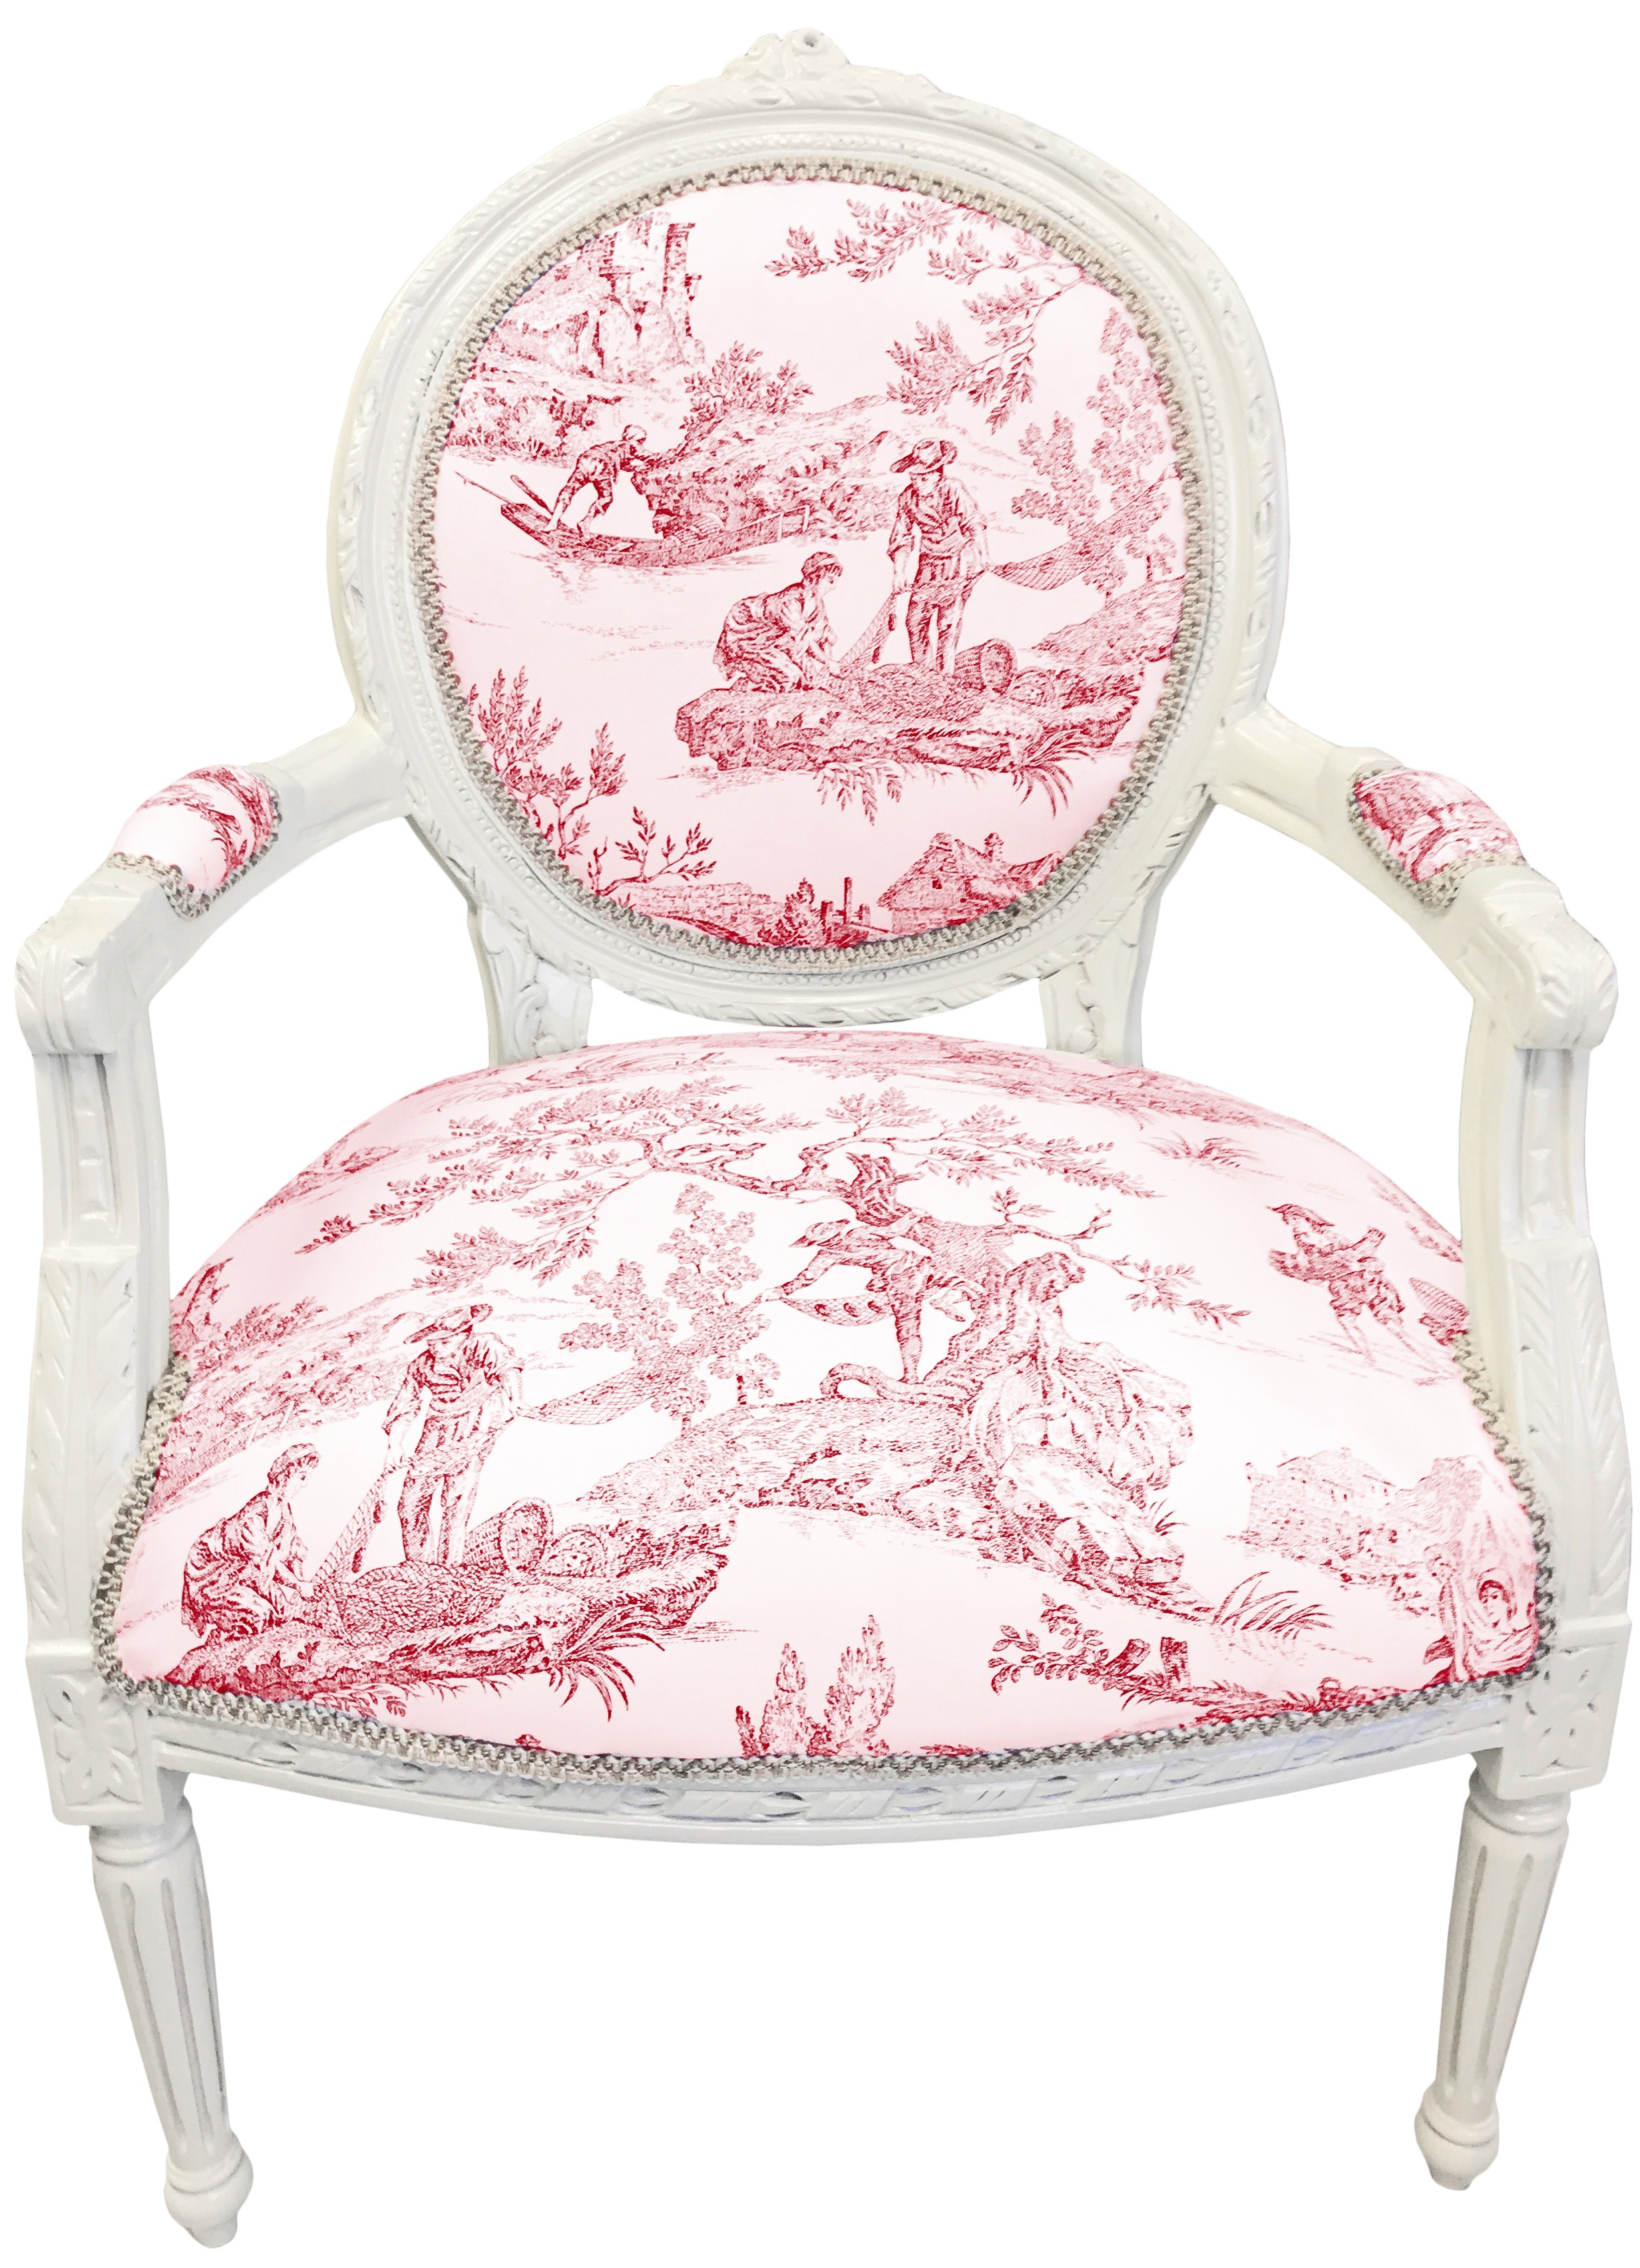 Surprising Baroque Armchair Of Louis Xvi Style Toile De Jouy And Beige Wood Caraccident5 Cool Chair Designs And Ideas Caraccident5Info